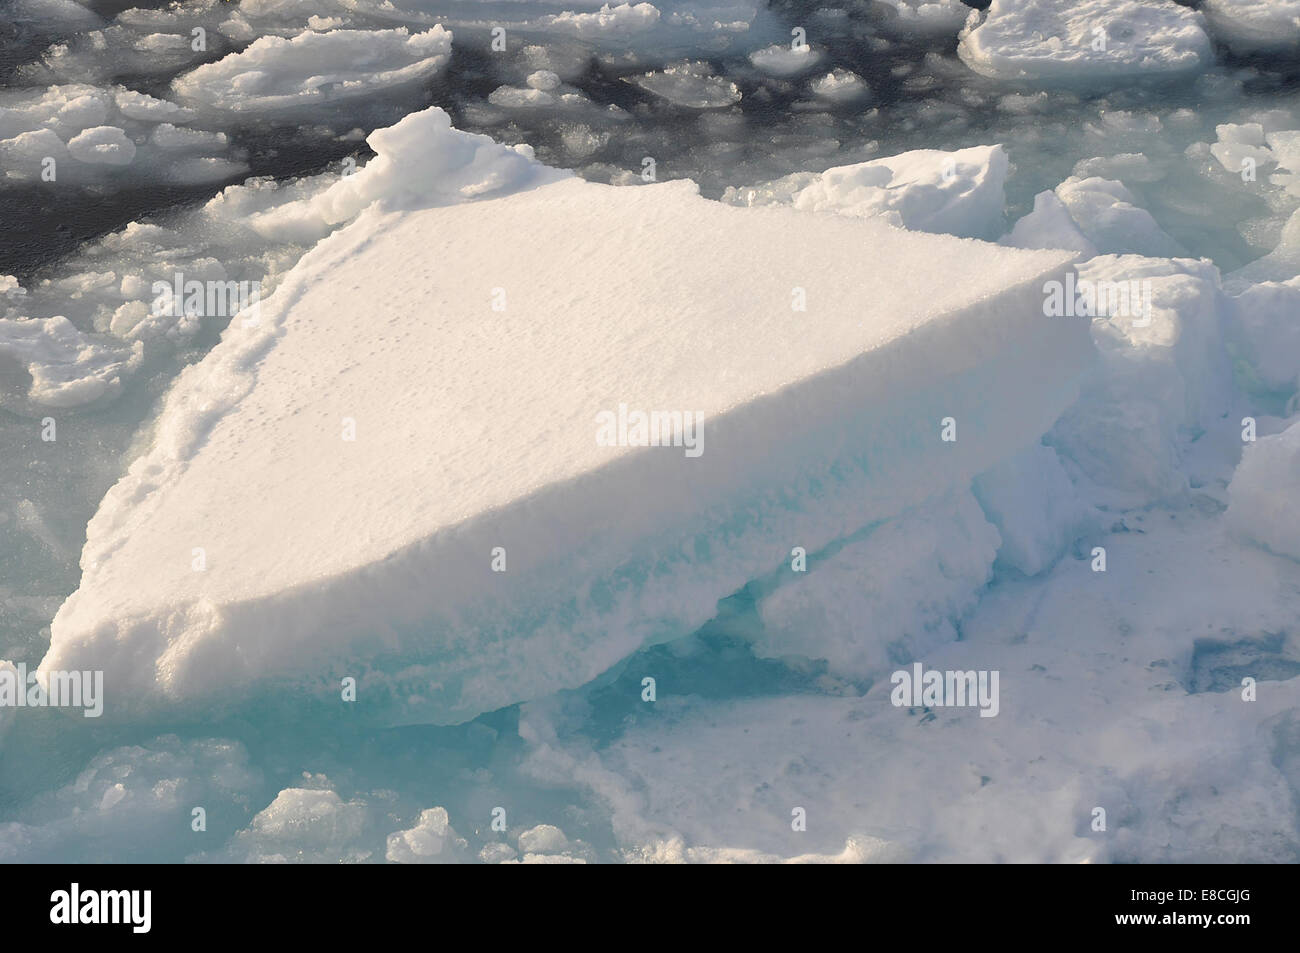 Easy as pie An ice floe in the Arctic Ocean resembles a slice of pie Sept. 9, 2009. - Stock Image